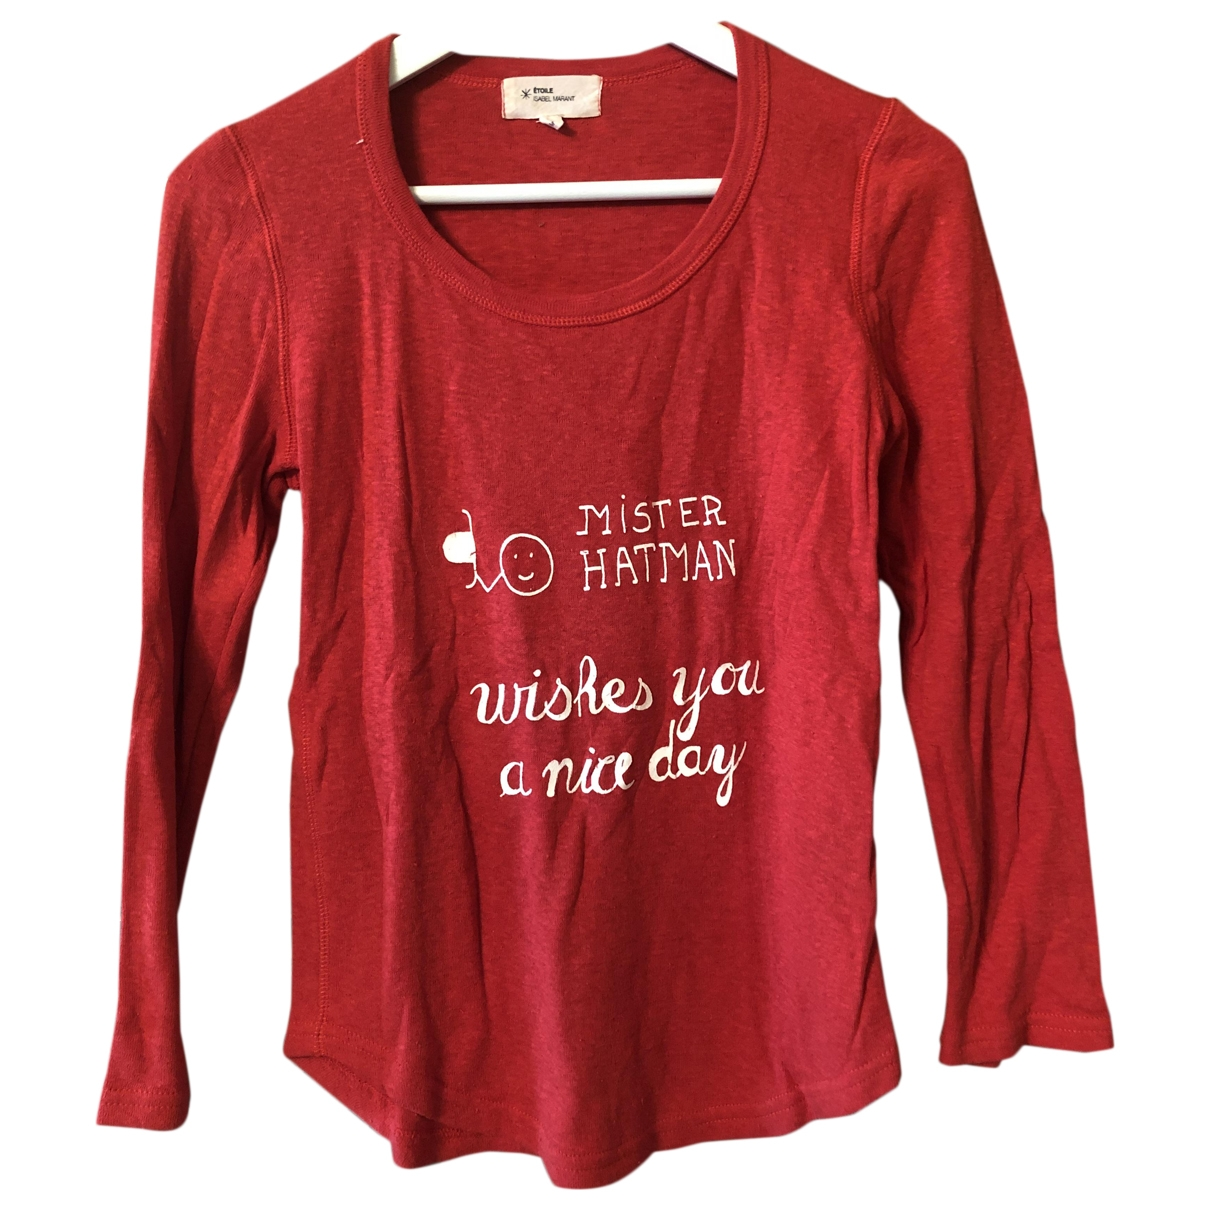 Isabel Marant Etoile \N Red Cotton  top for Women M International